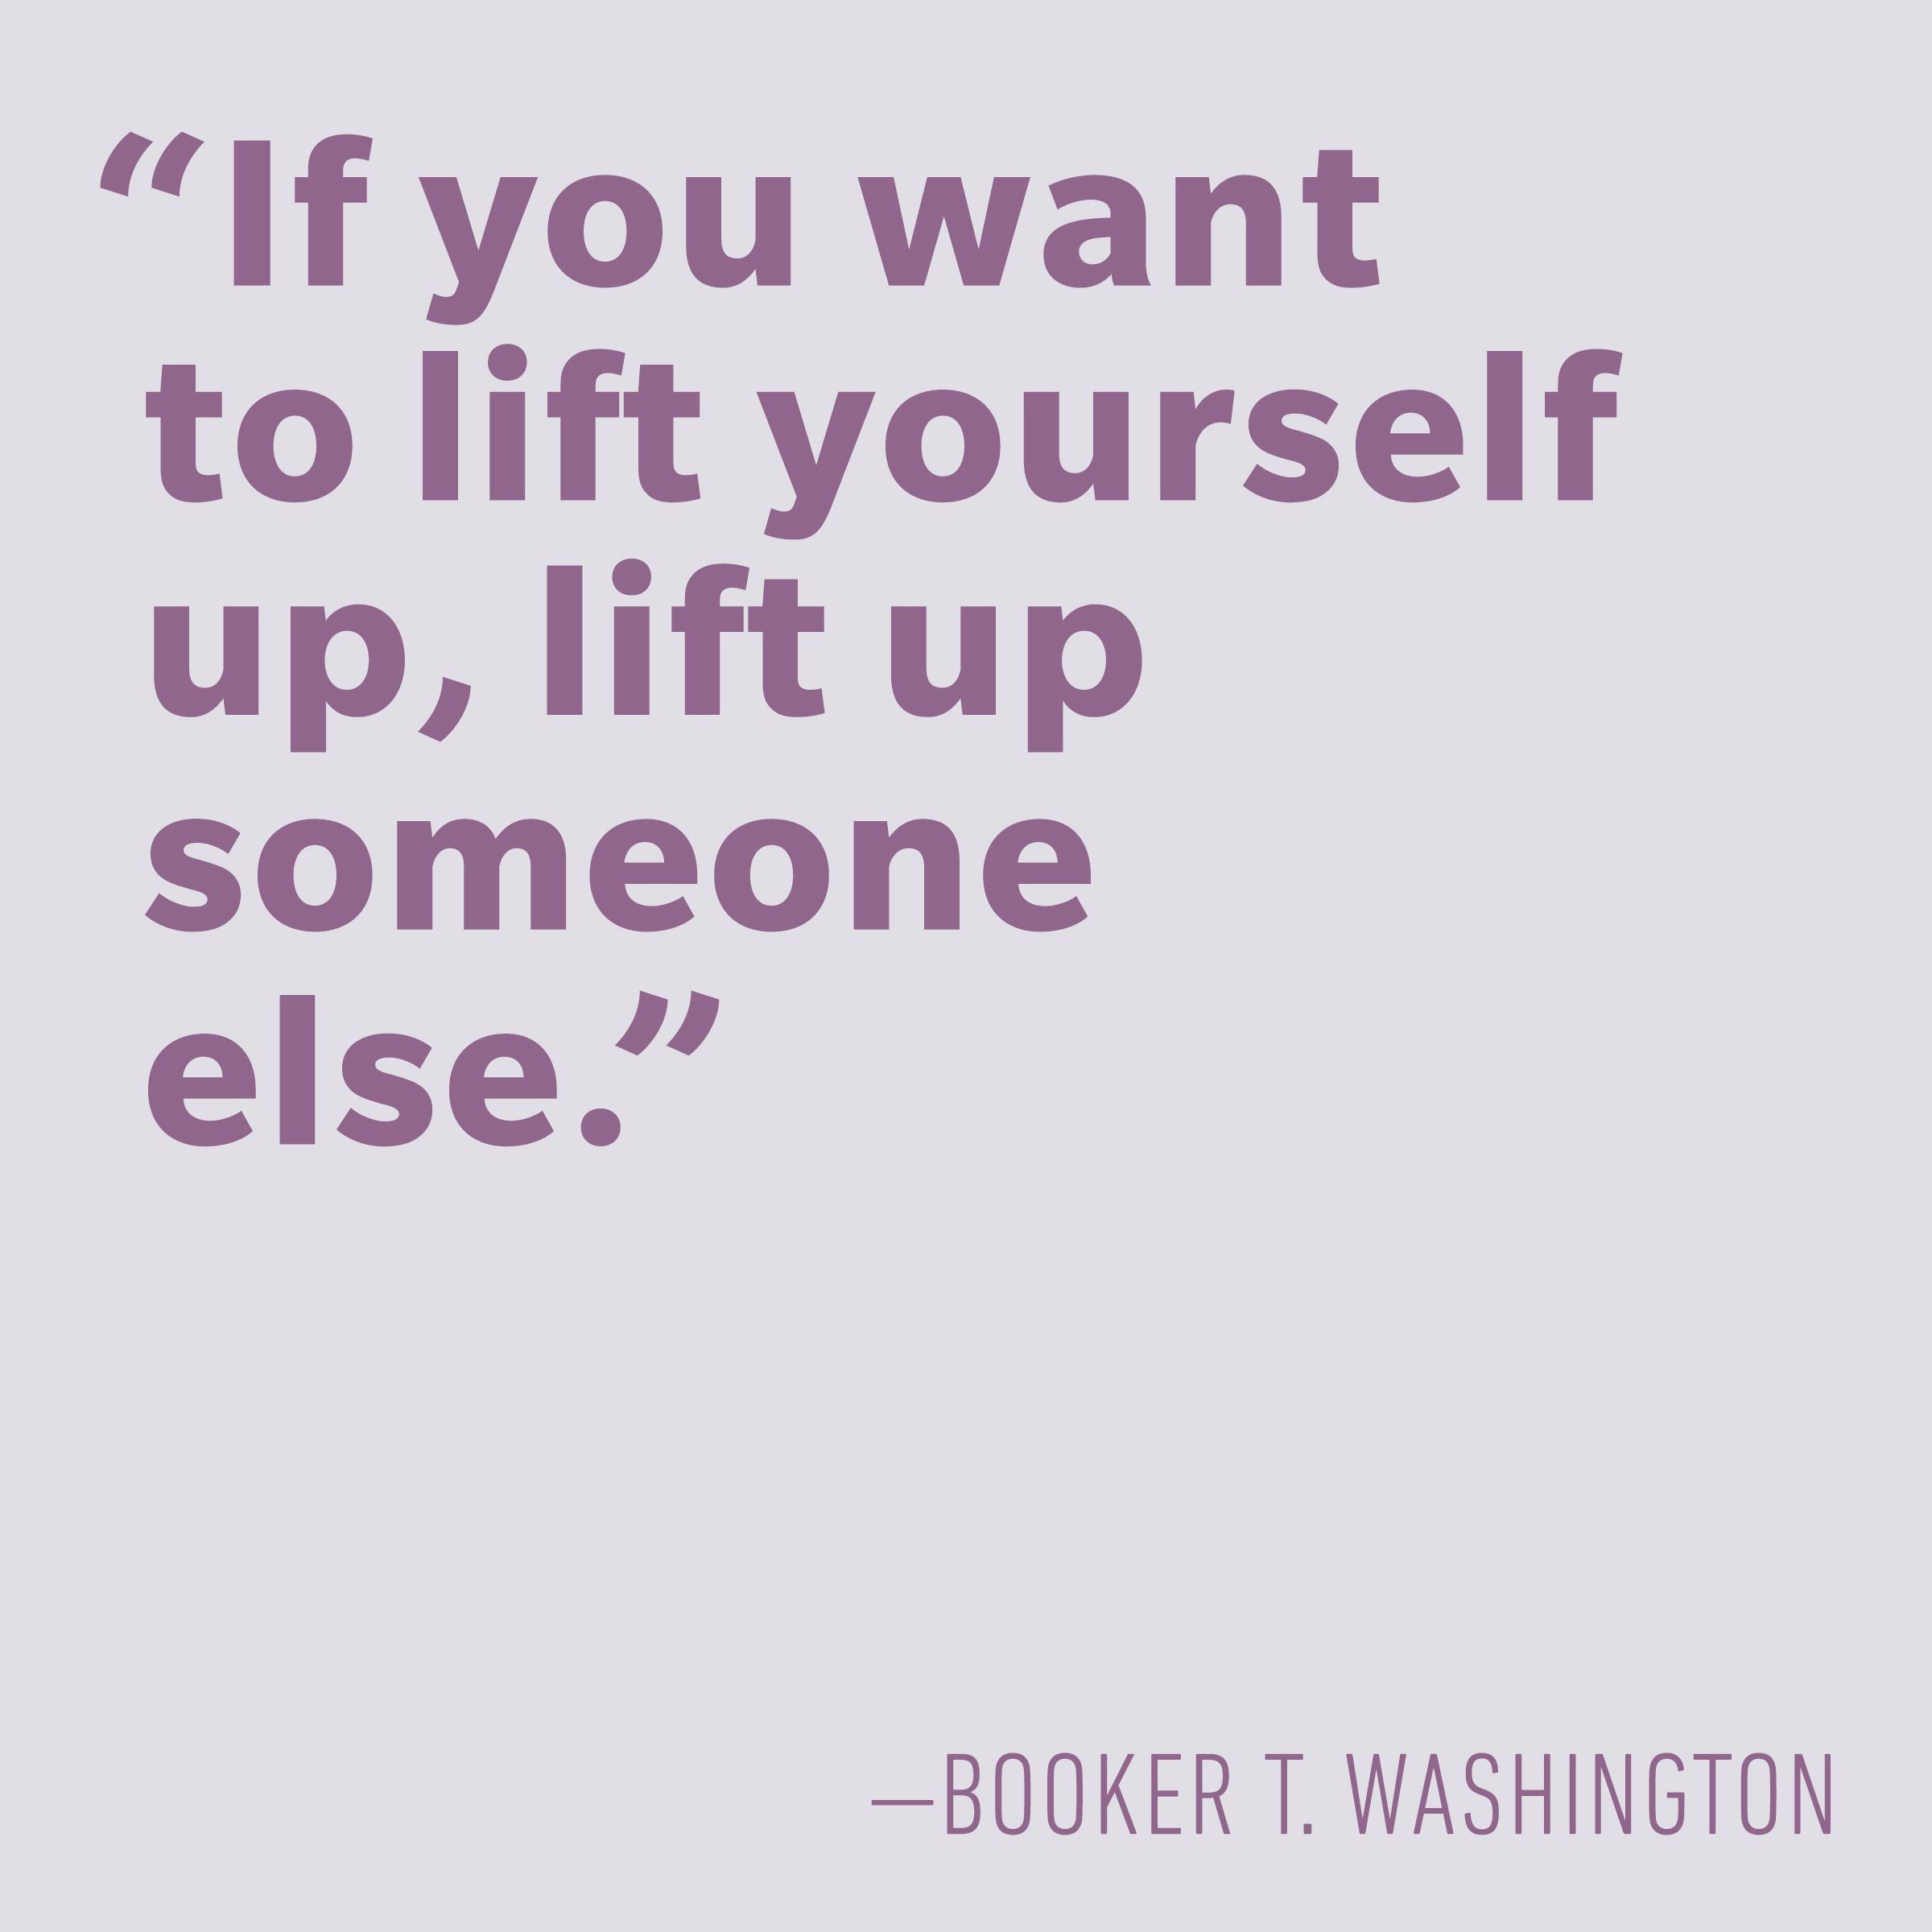 Motivational quotes - Booker T. Washington